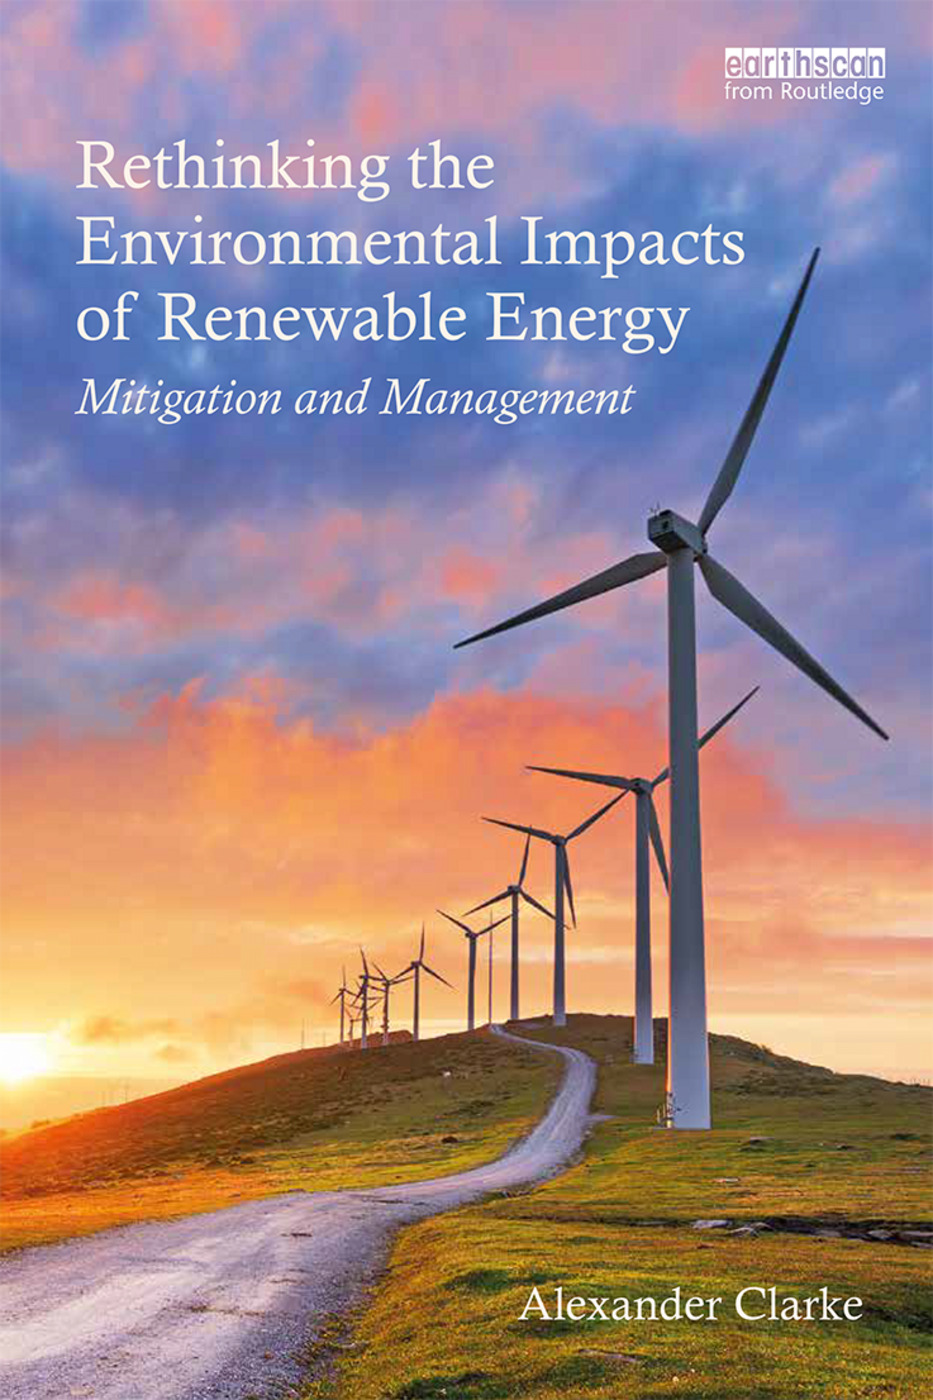 Rethinking the Environmental Impacts of Renewable Energy